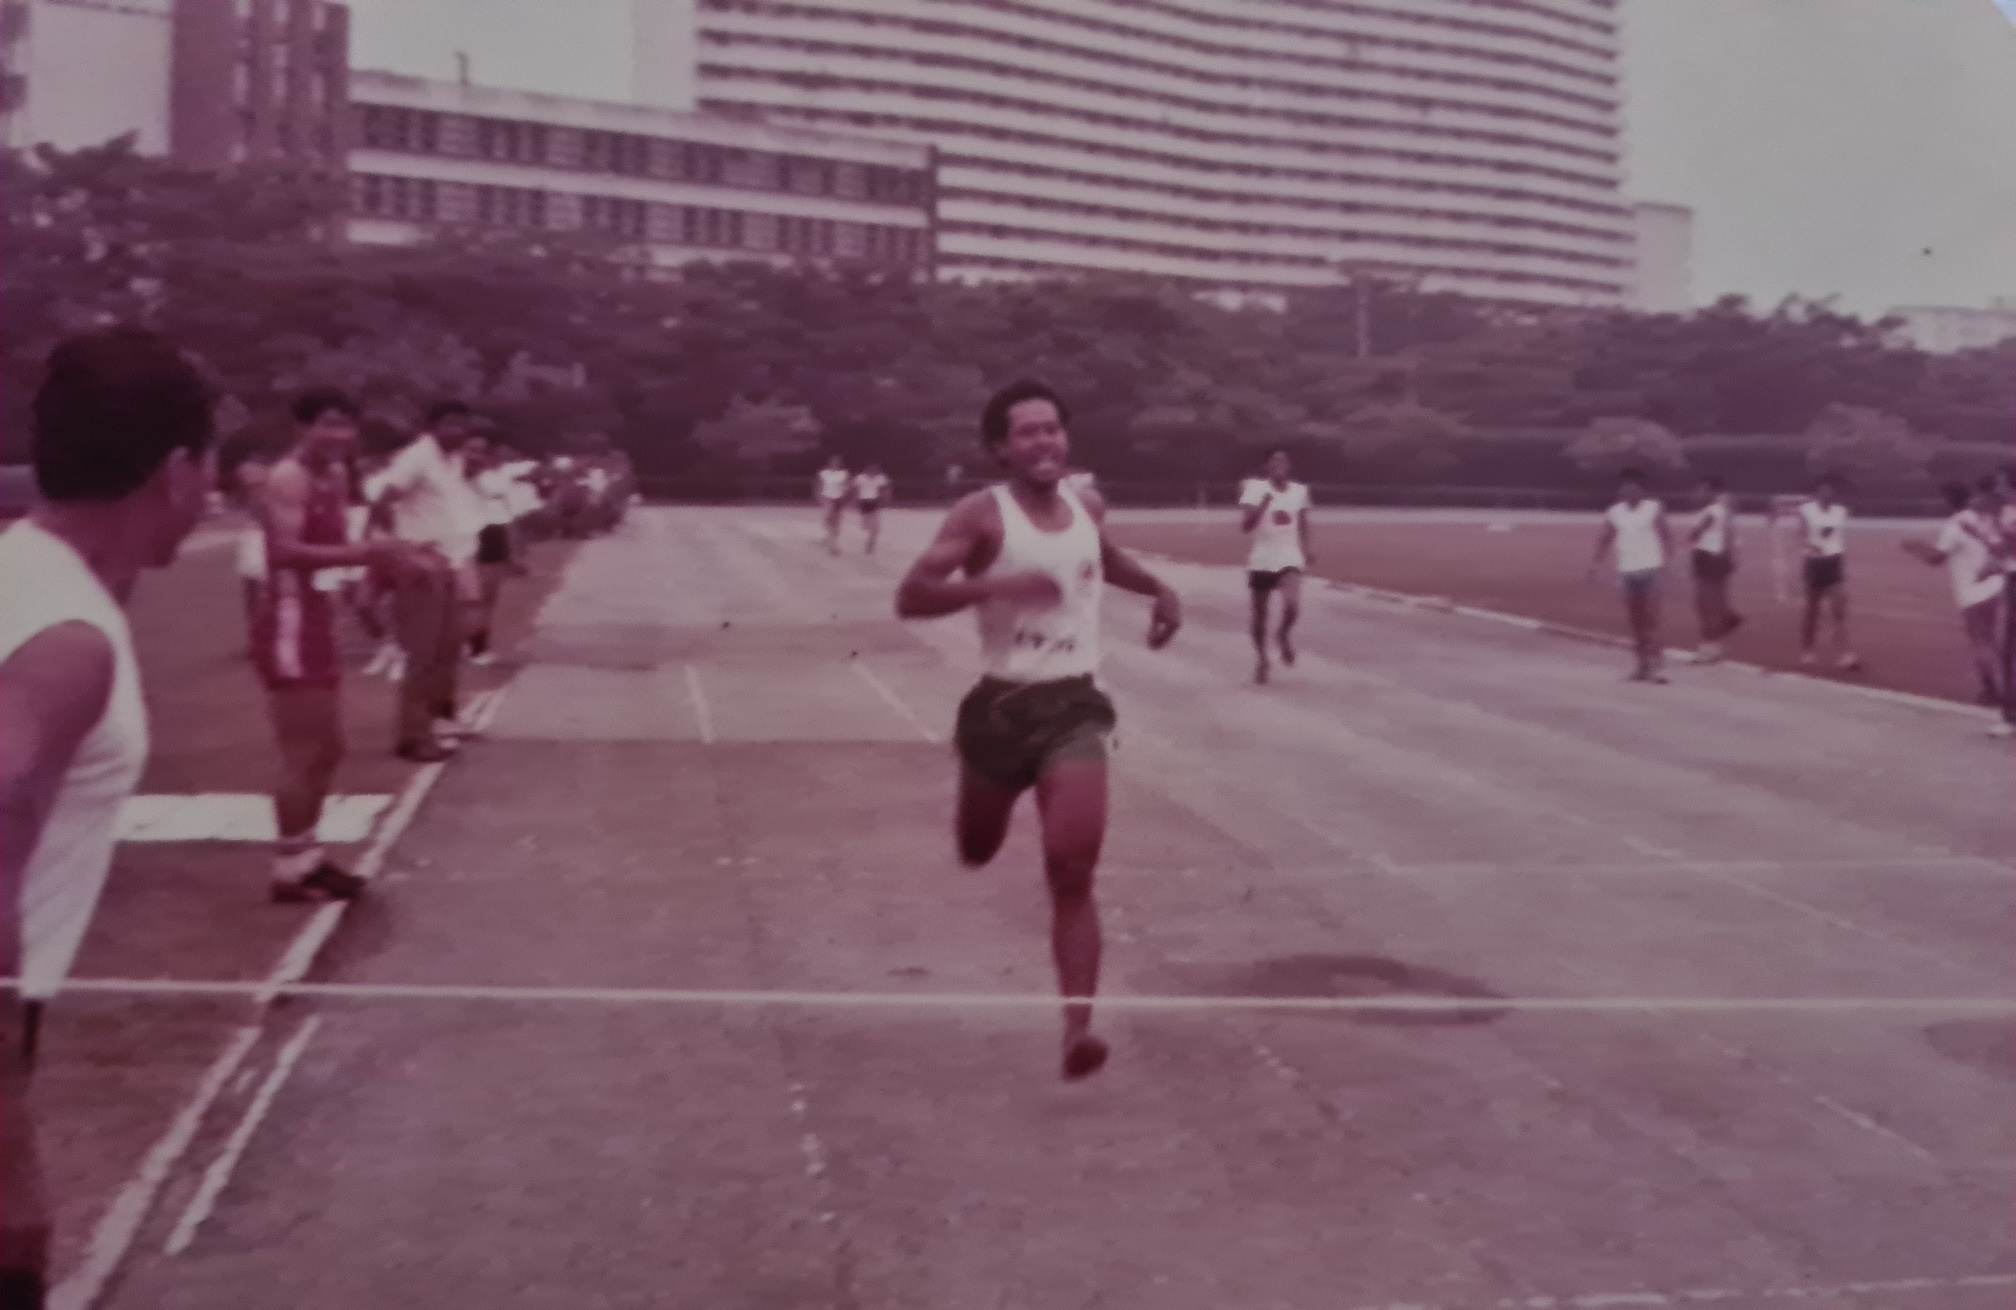 SWO (RET) Md Salleh was an active participant in the Singapore Fire Service's Sports Day competition.